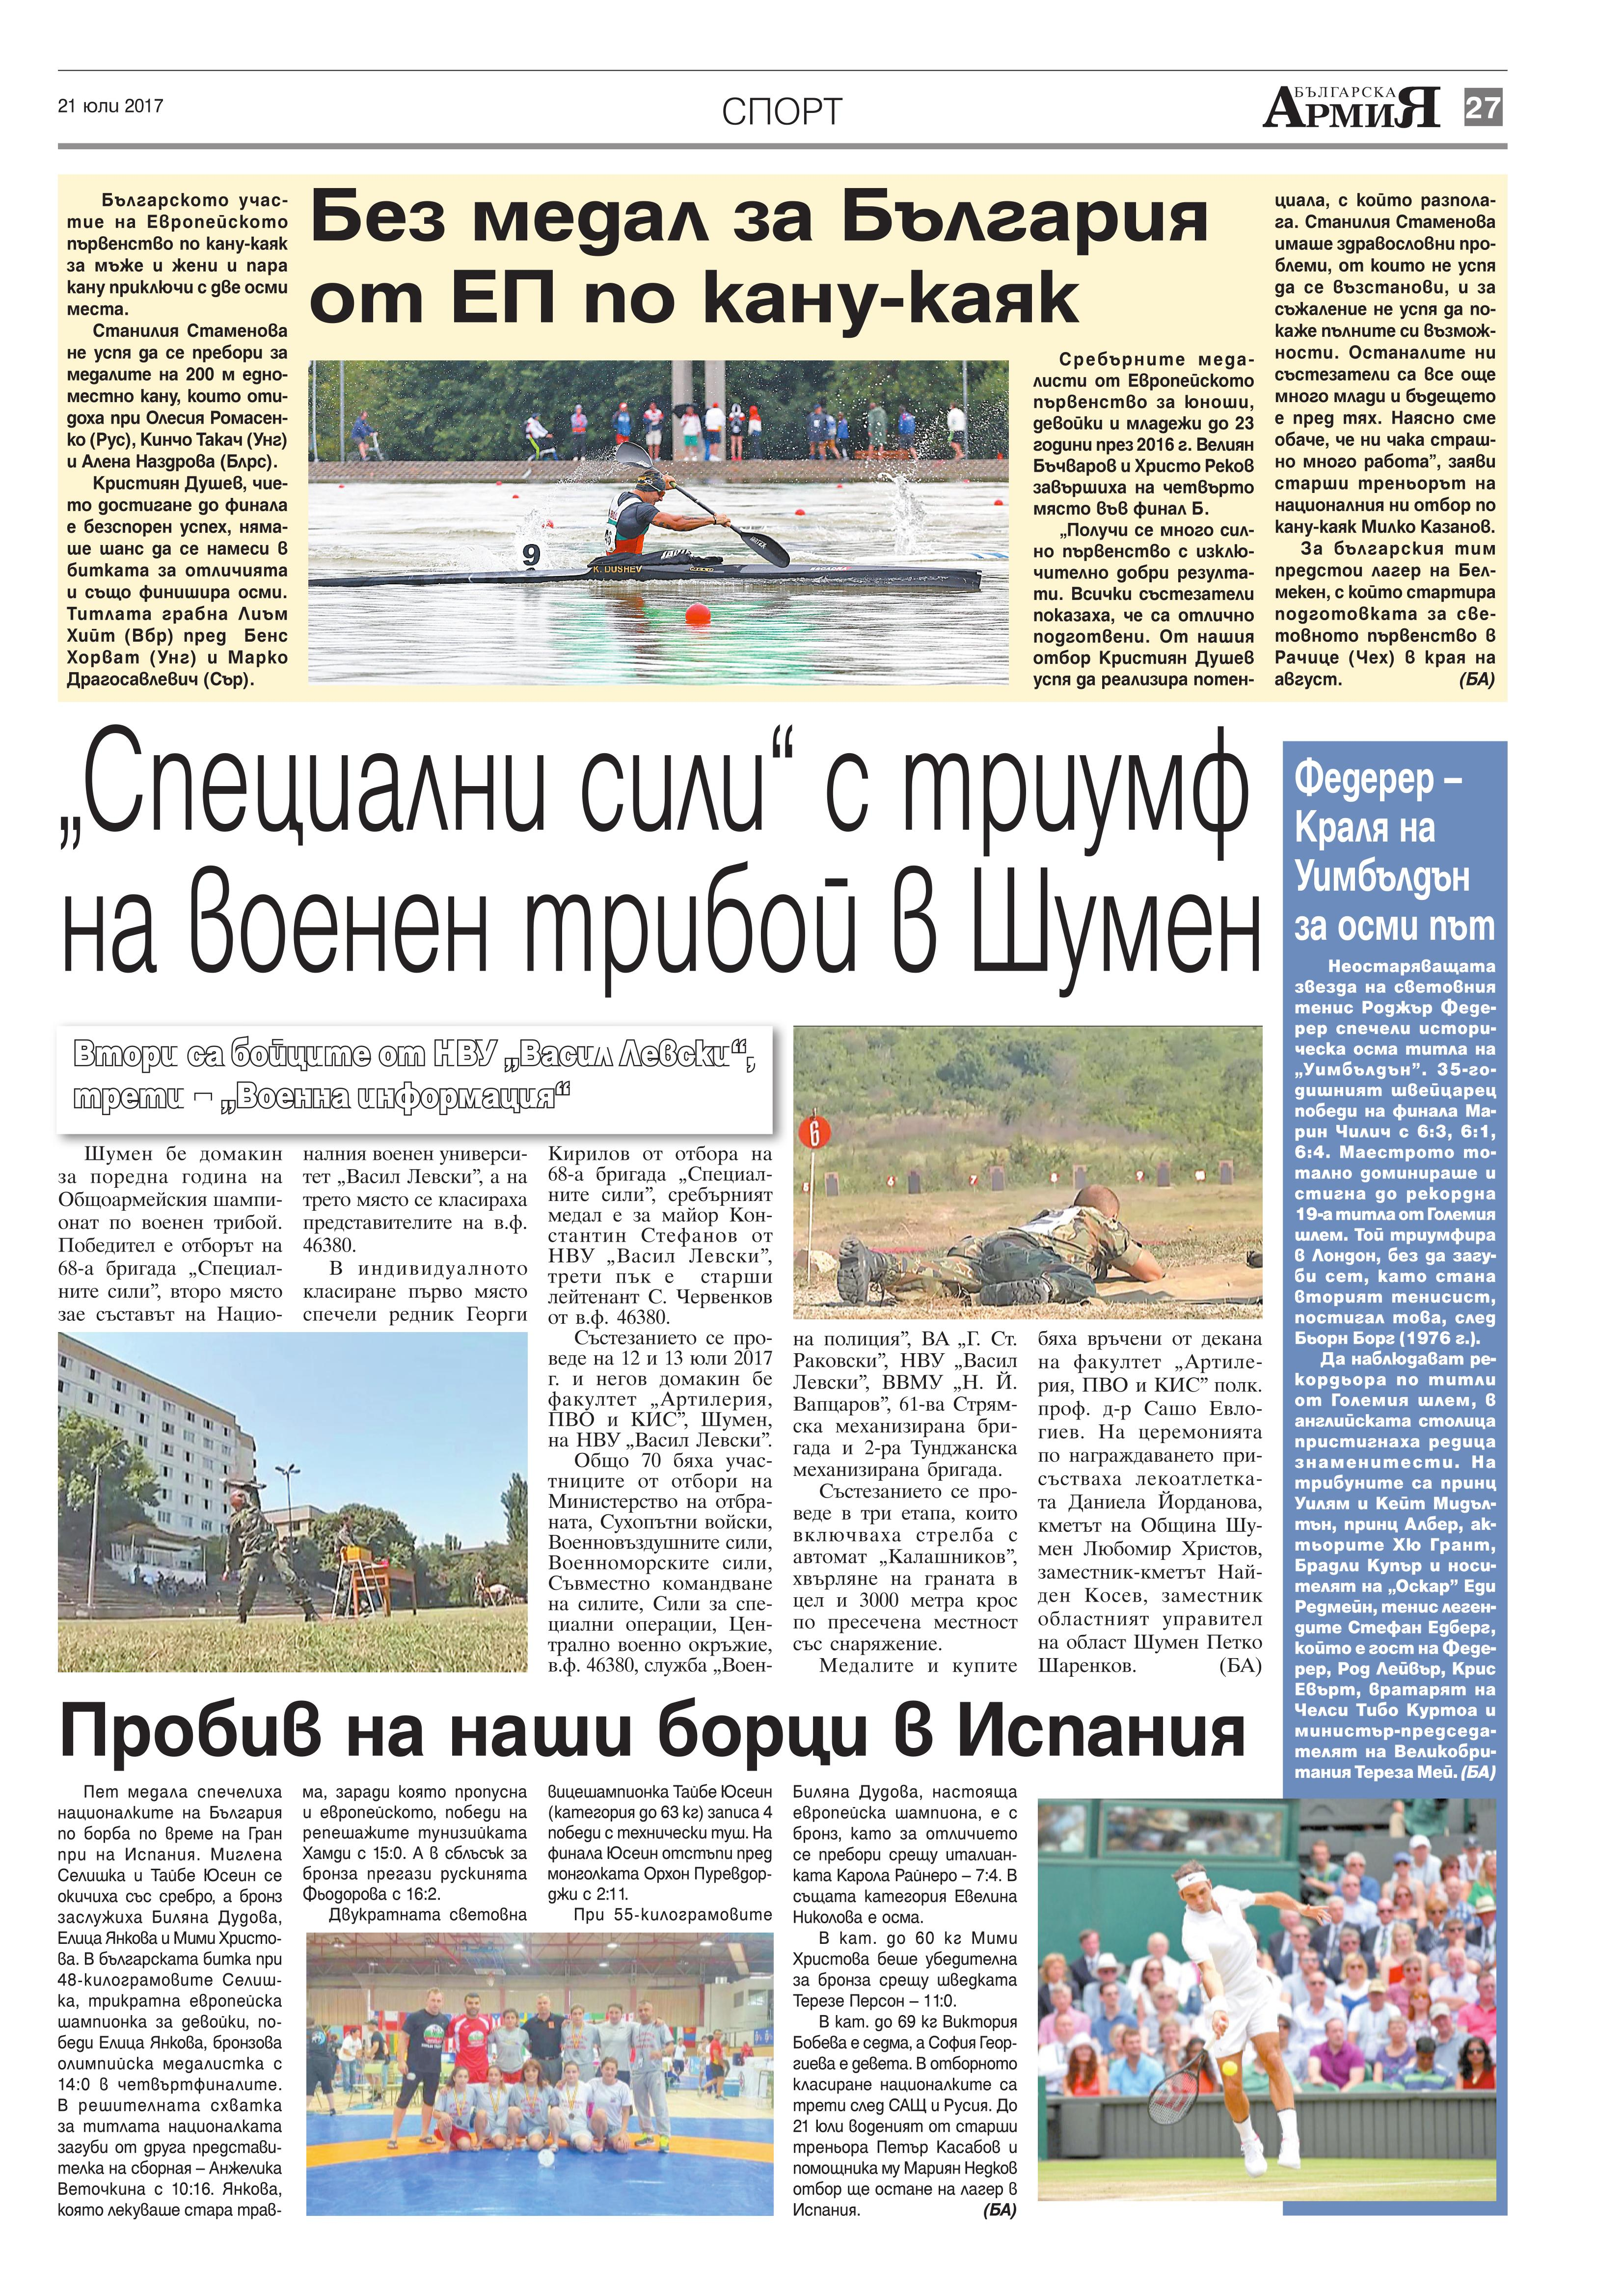 https://www.armymedia.bg/wp-content/uploads/2015/06/27.page1_-23.jpg